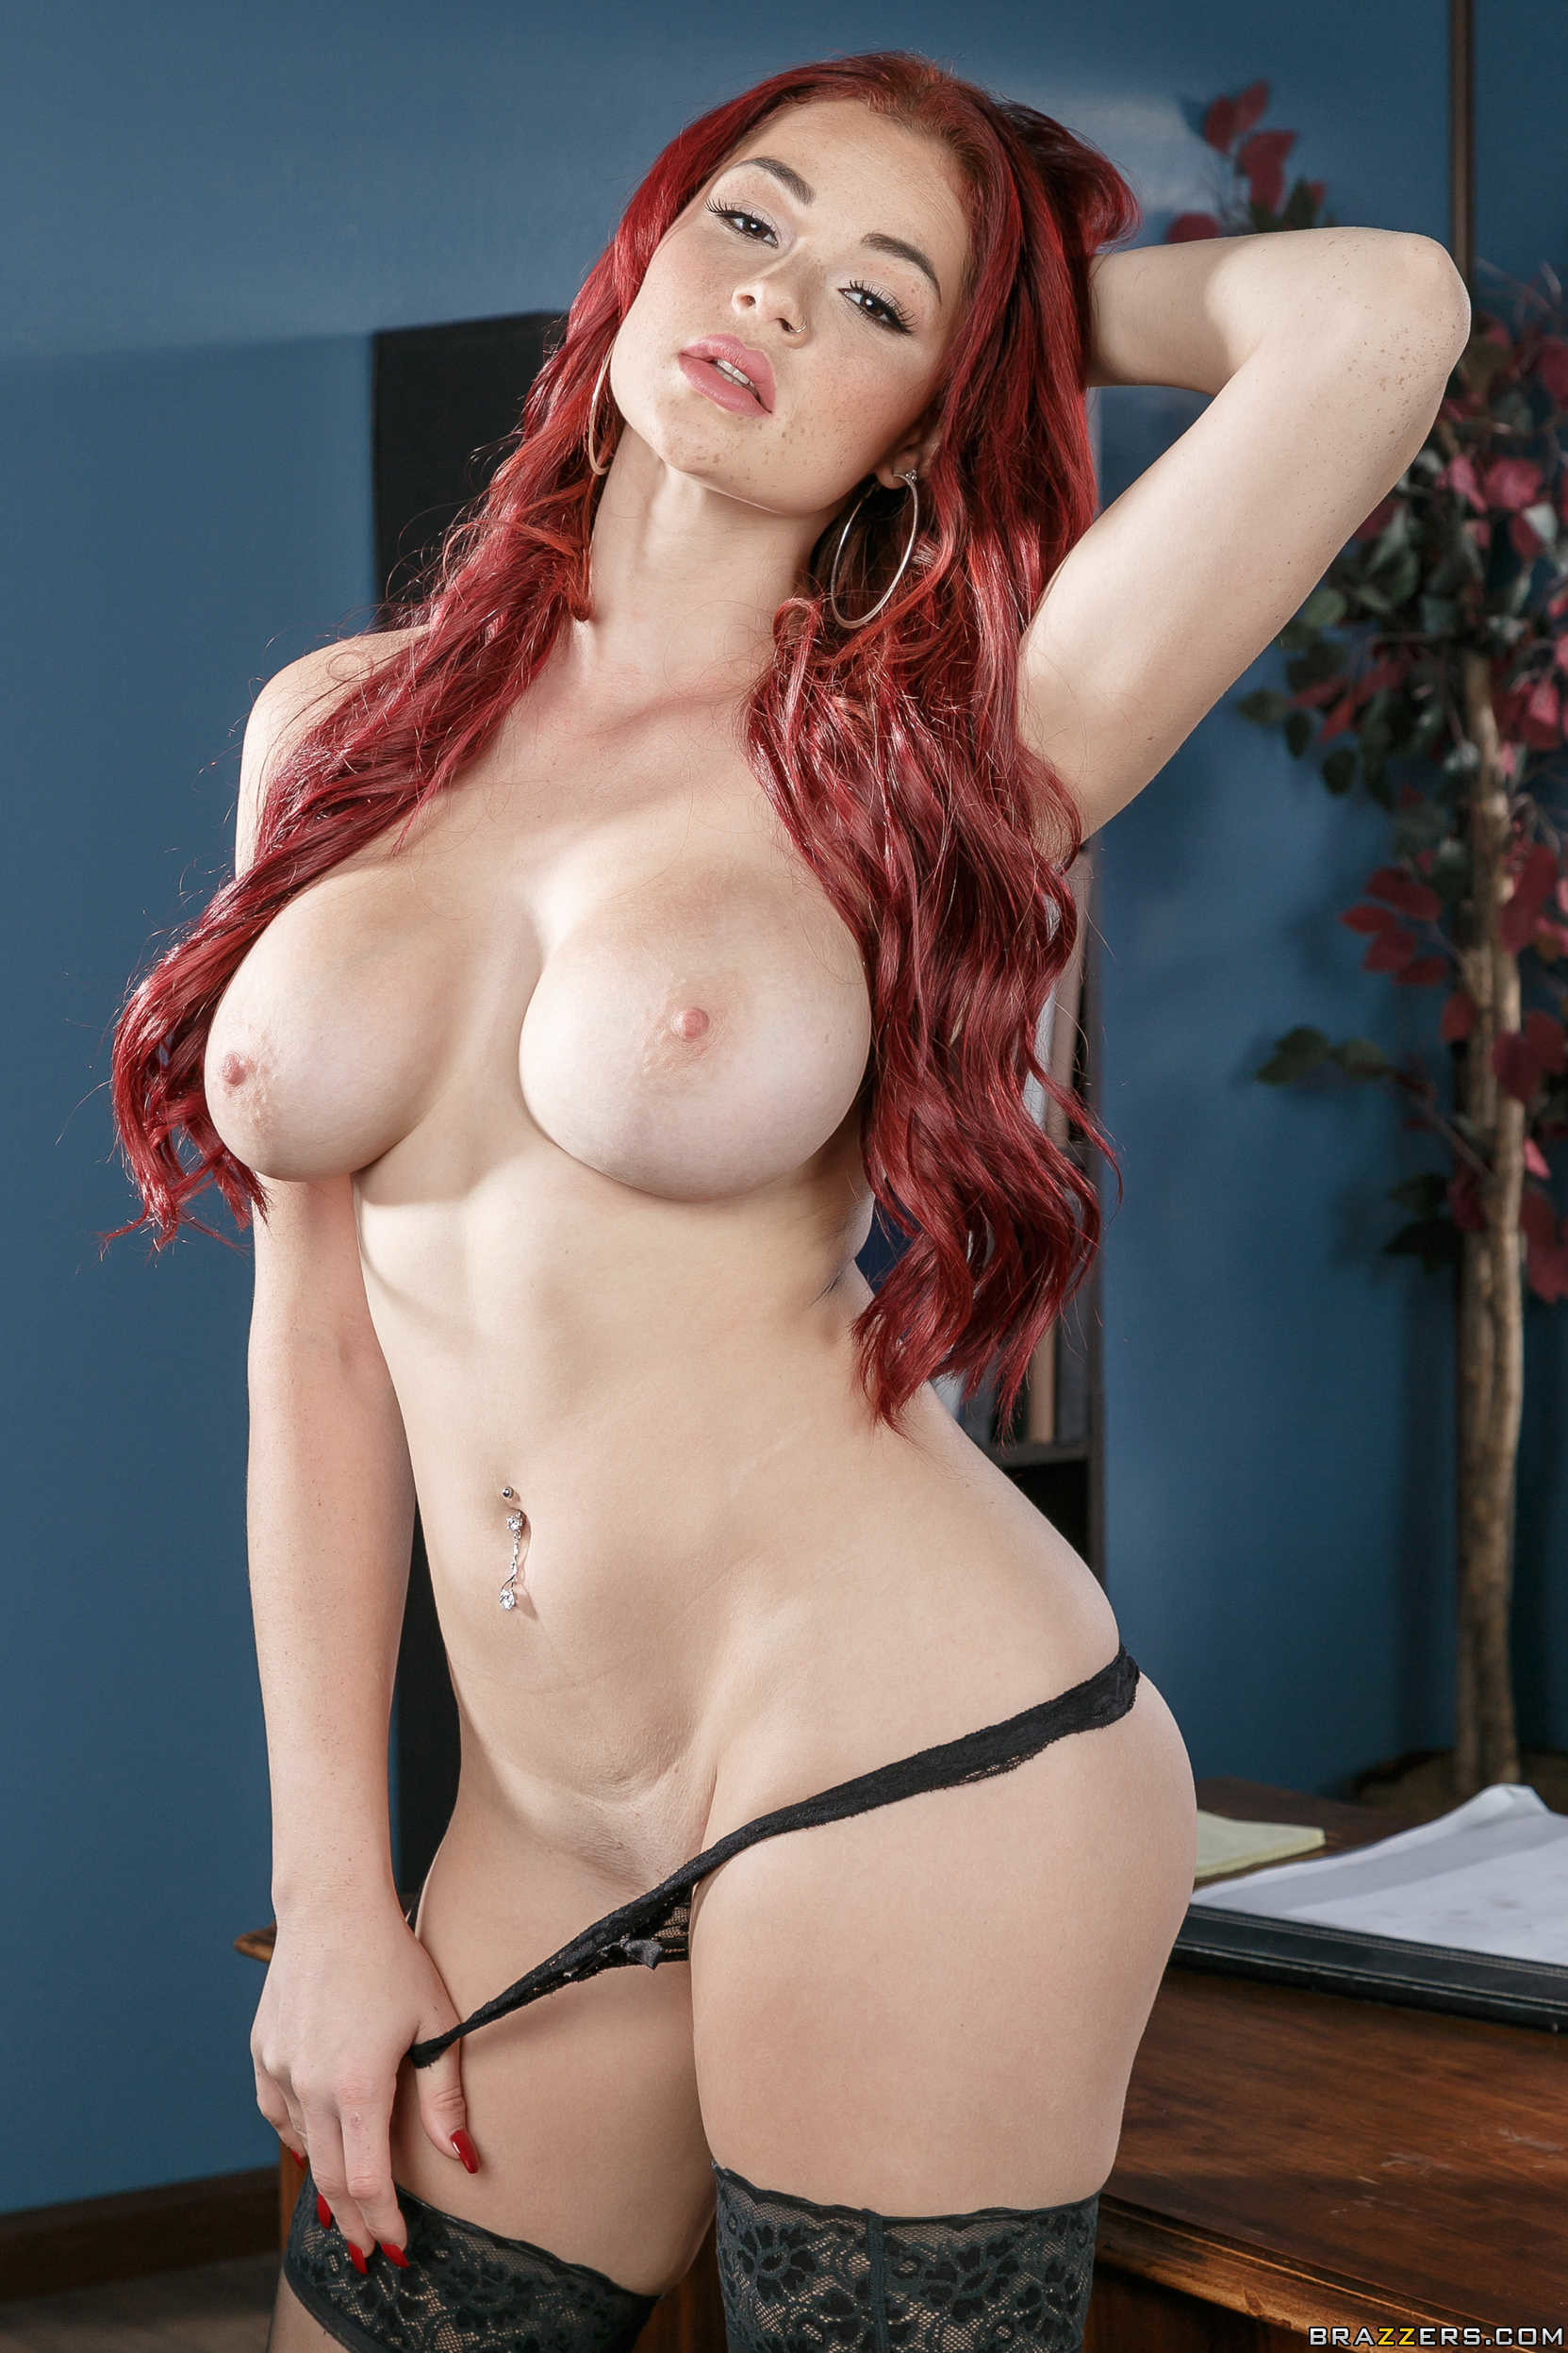 Pornstars with red hair